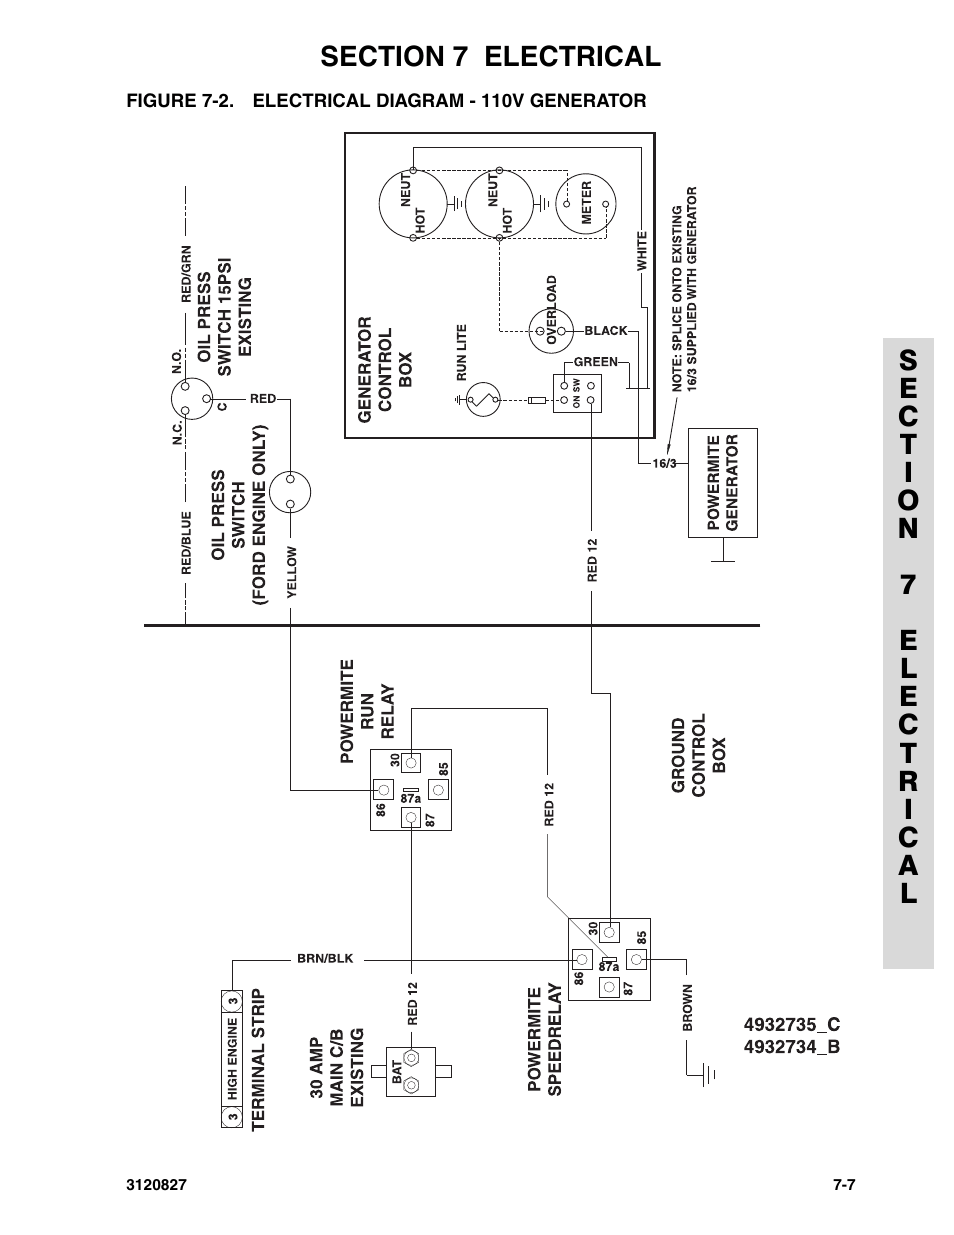 footswitch wiring diagram for jlg | wiring diagram wiring diagram for jlg scissor lift 1532 footswitch wiring diagram for jlg